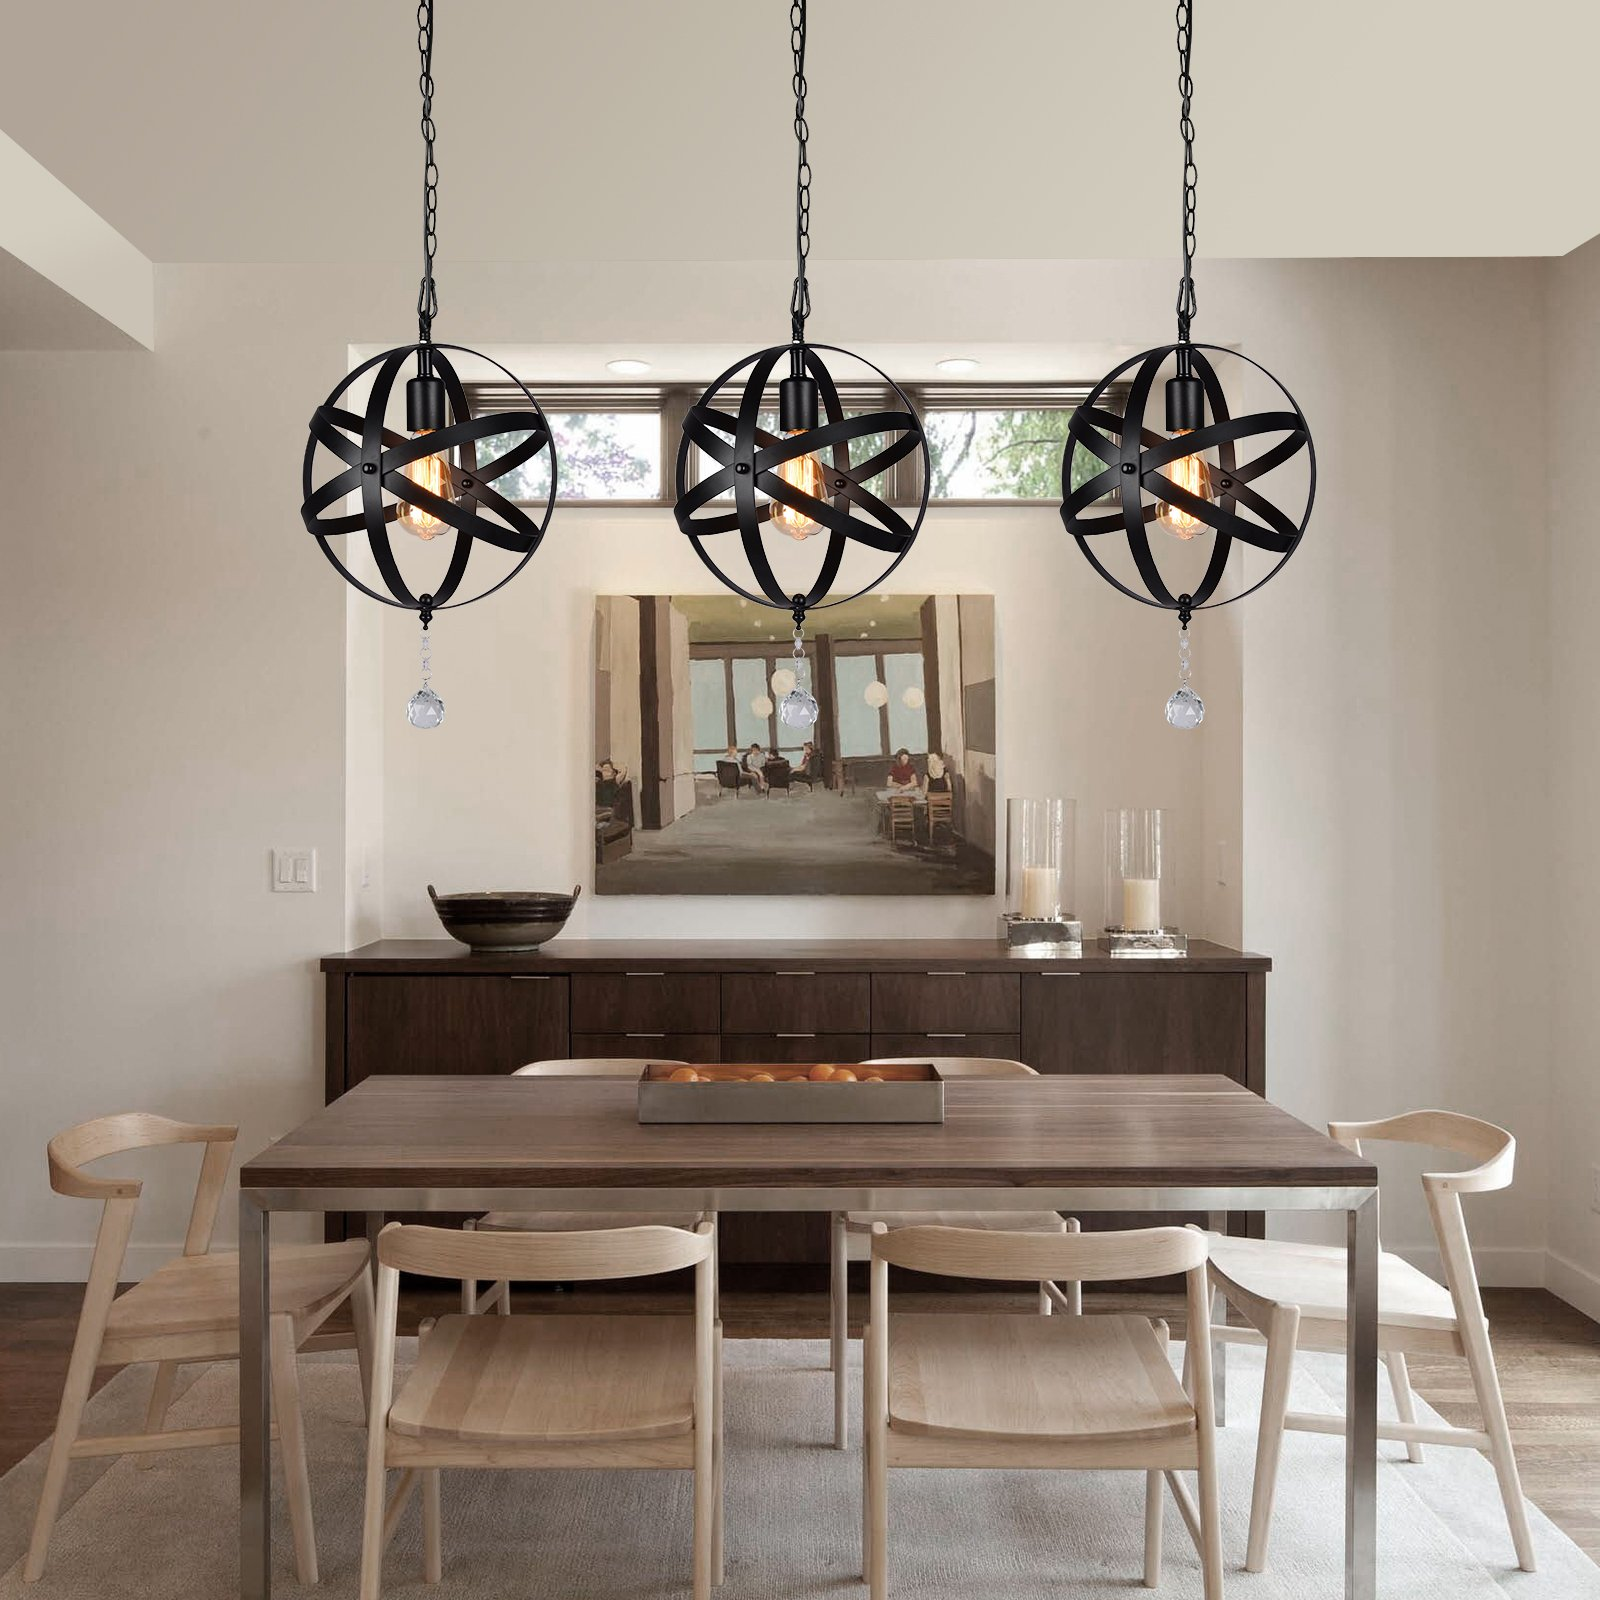 HMVPL Plug-in Industrial Globe Pendant Lights with 16.4 Ft Hanging Cord and Dimmable On/Off Switch, Vintage Metal Spherical Lantern Chandelier Ceiling Light Fixture by HMVPL (Image #4)